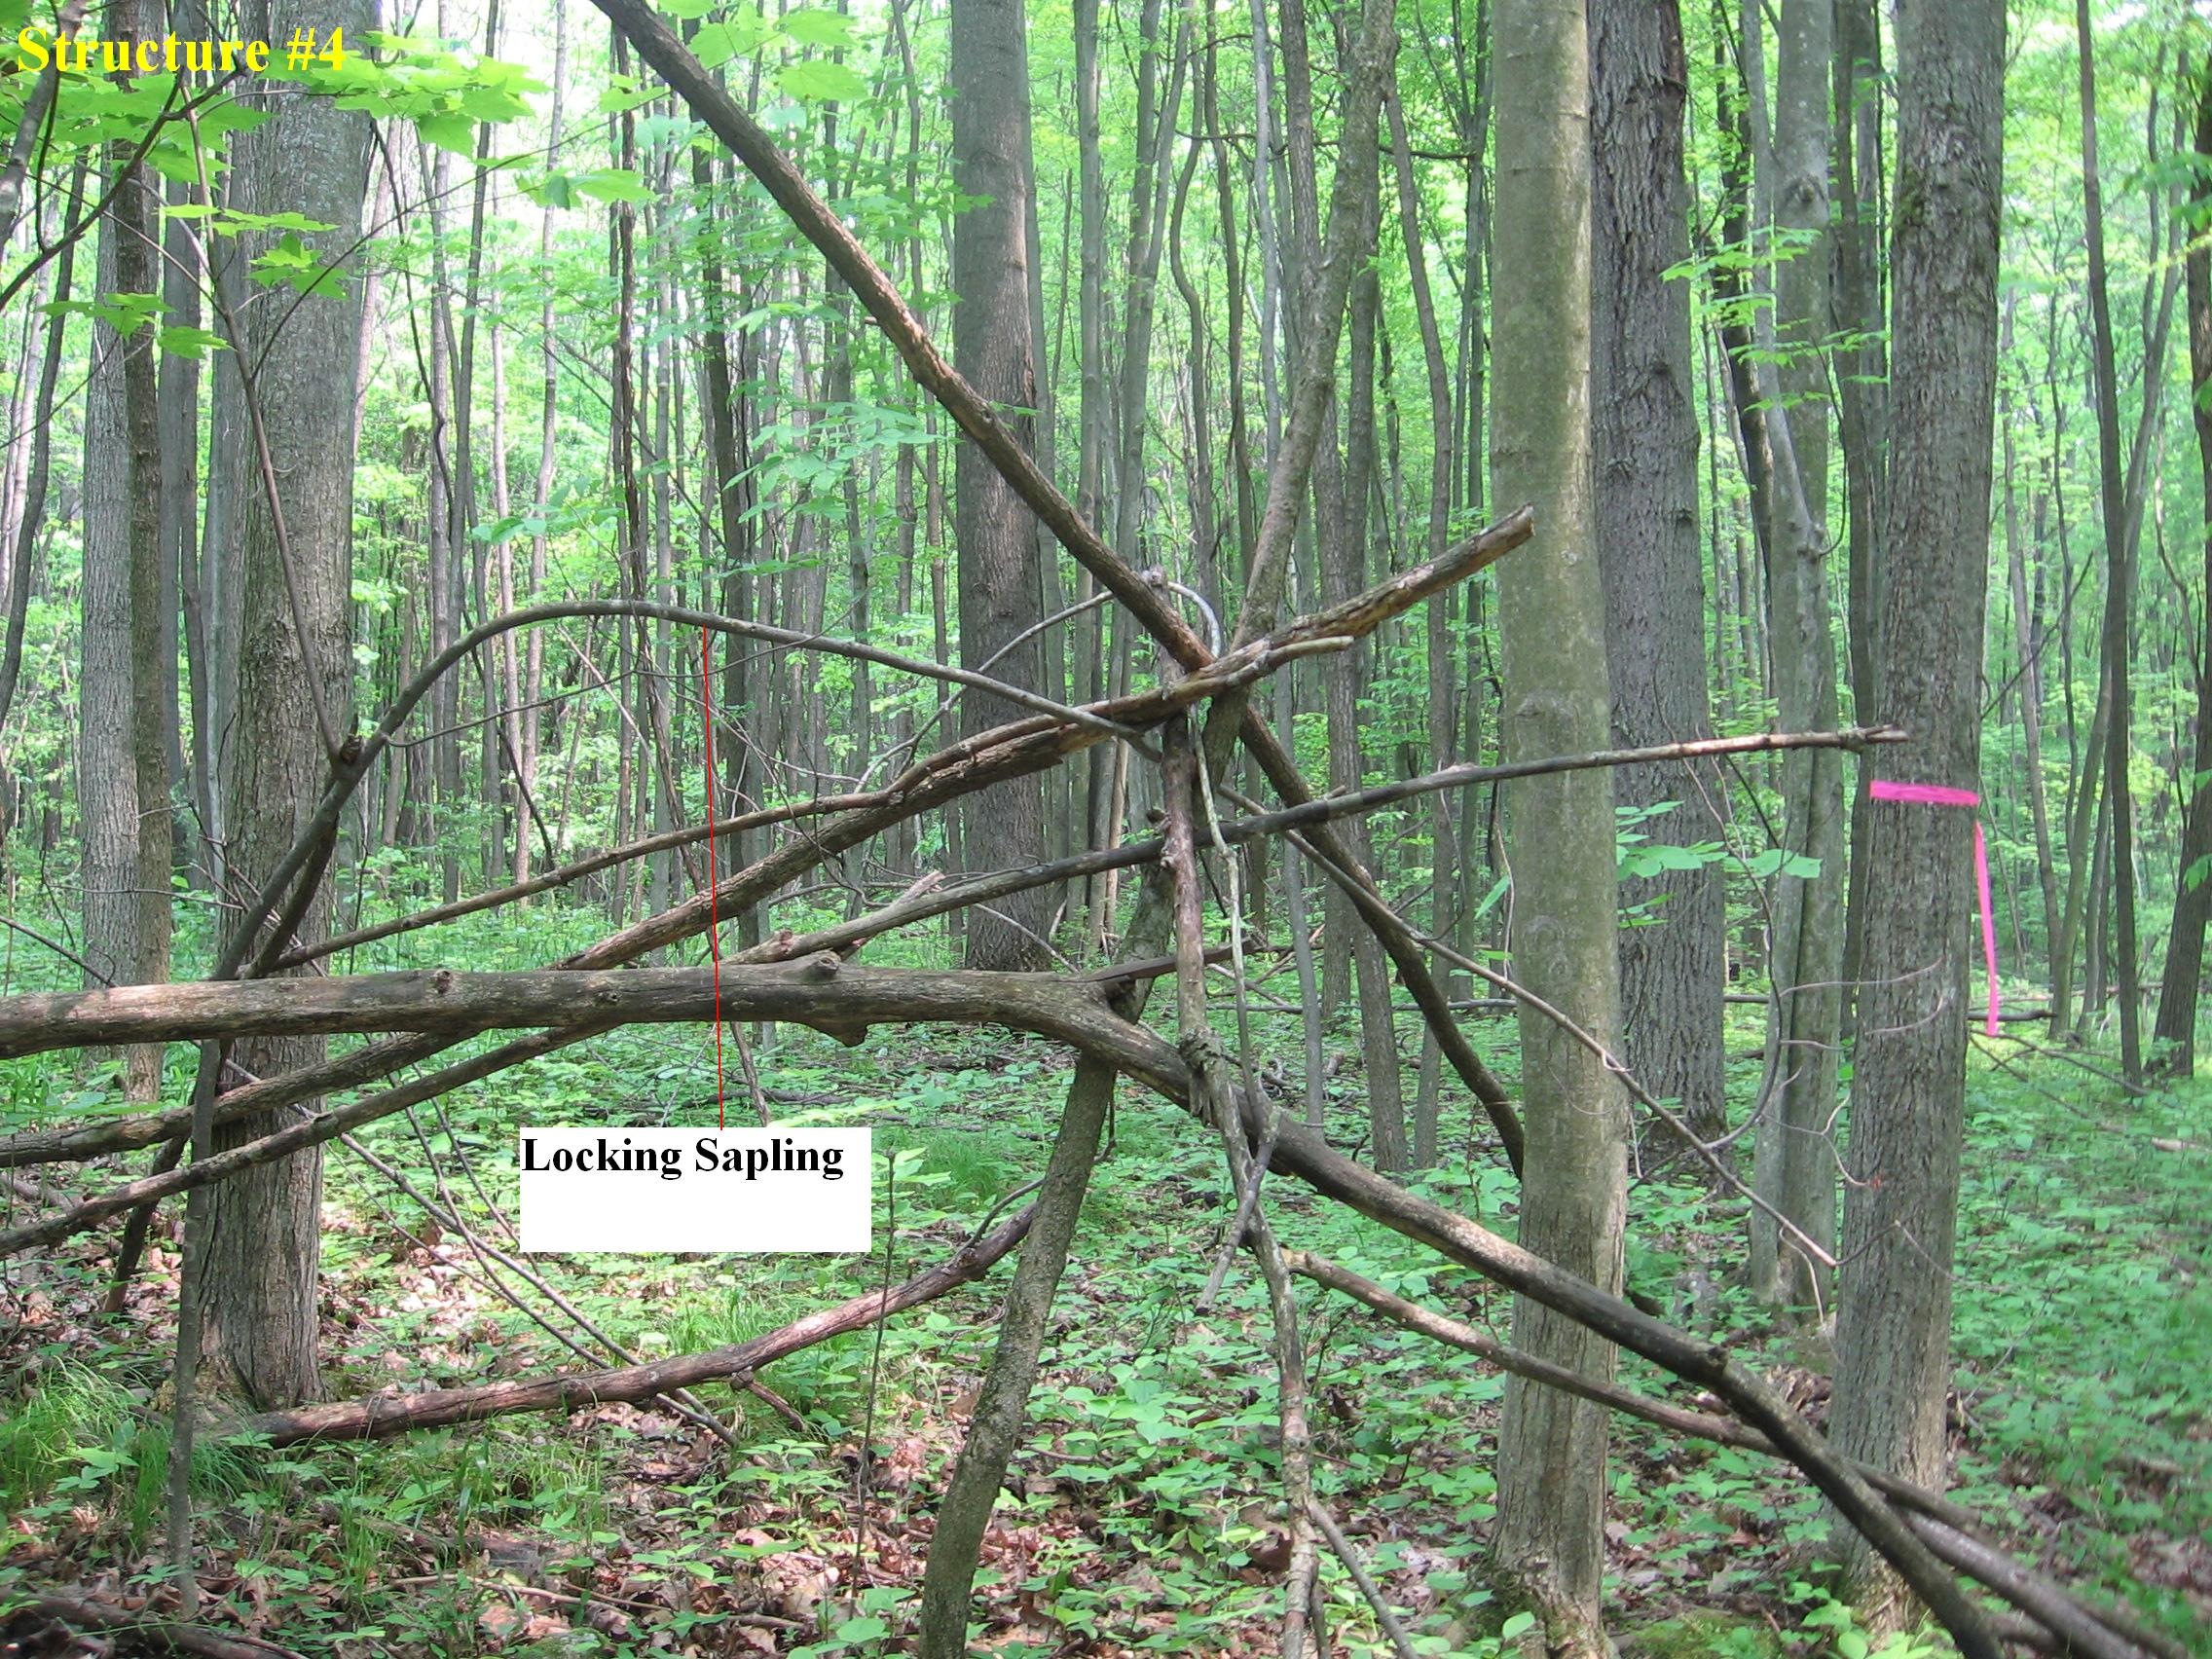 Structure #4, 5 foot tepee showing locking sapling